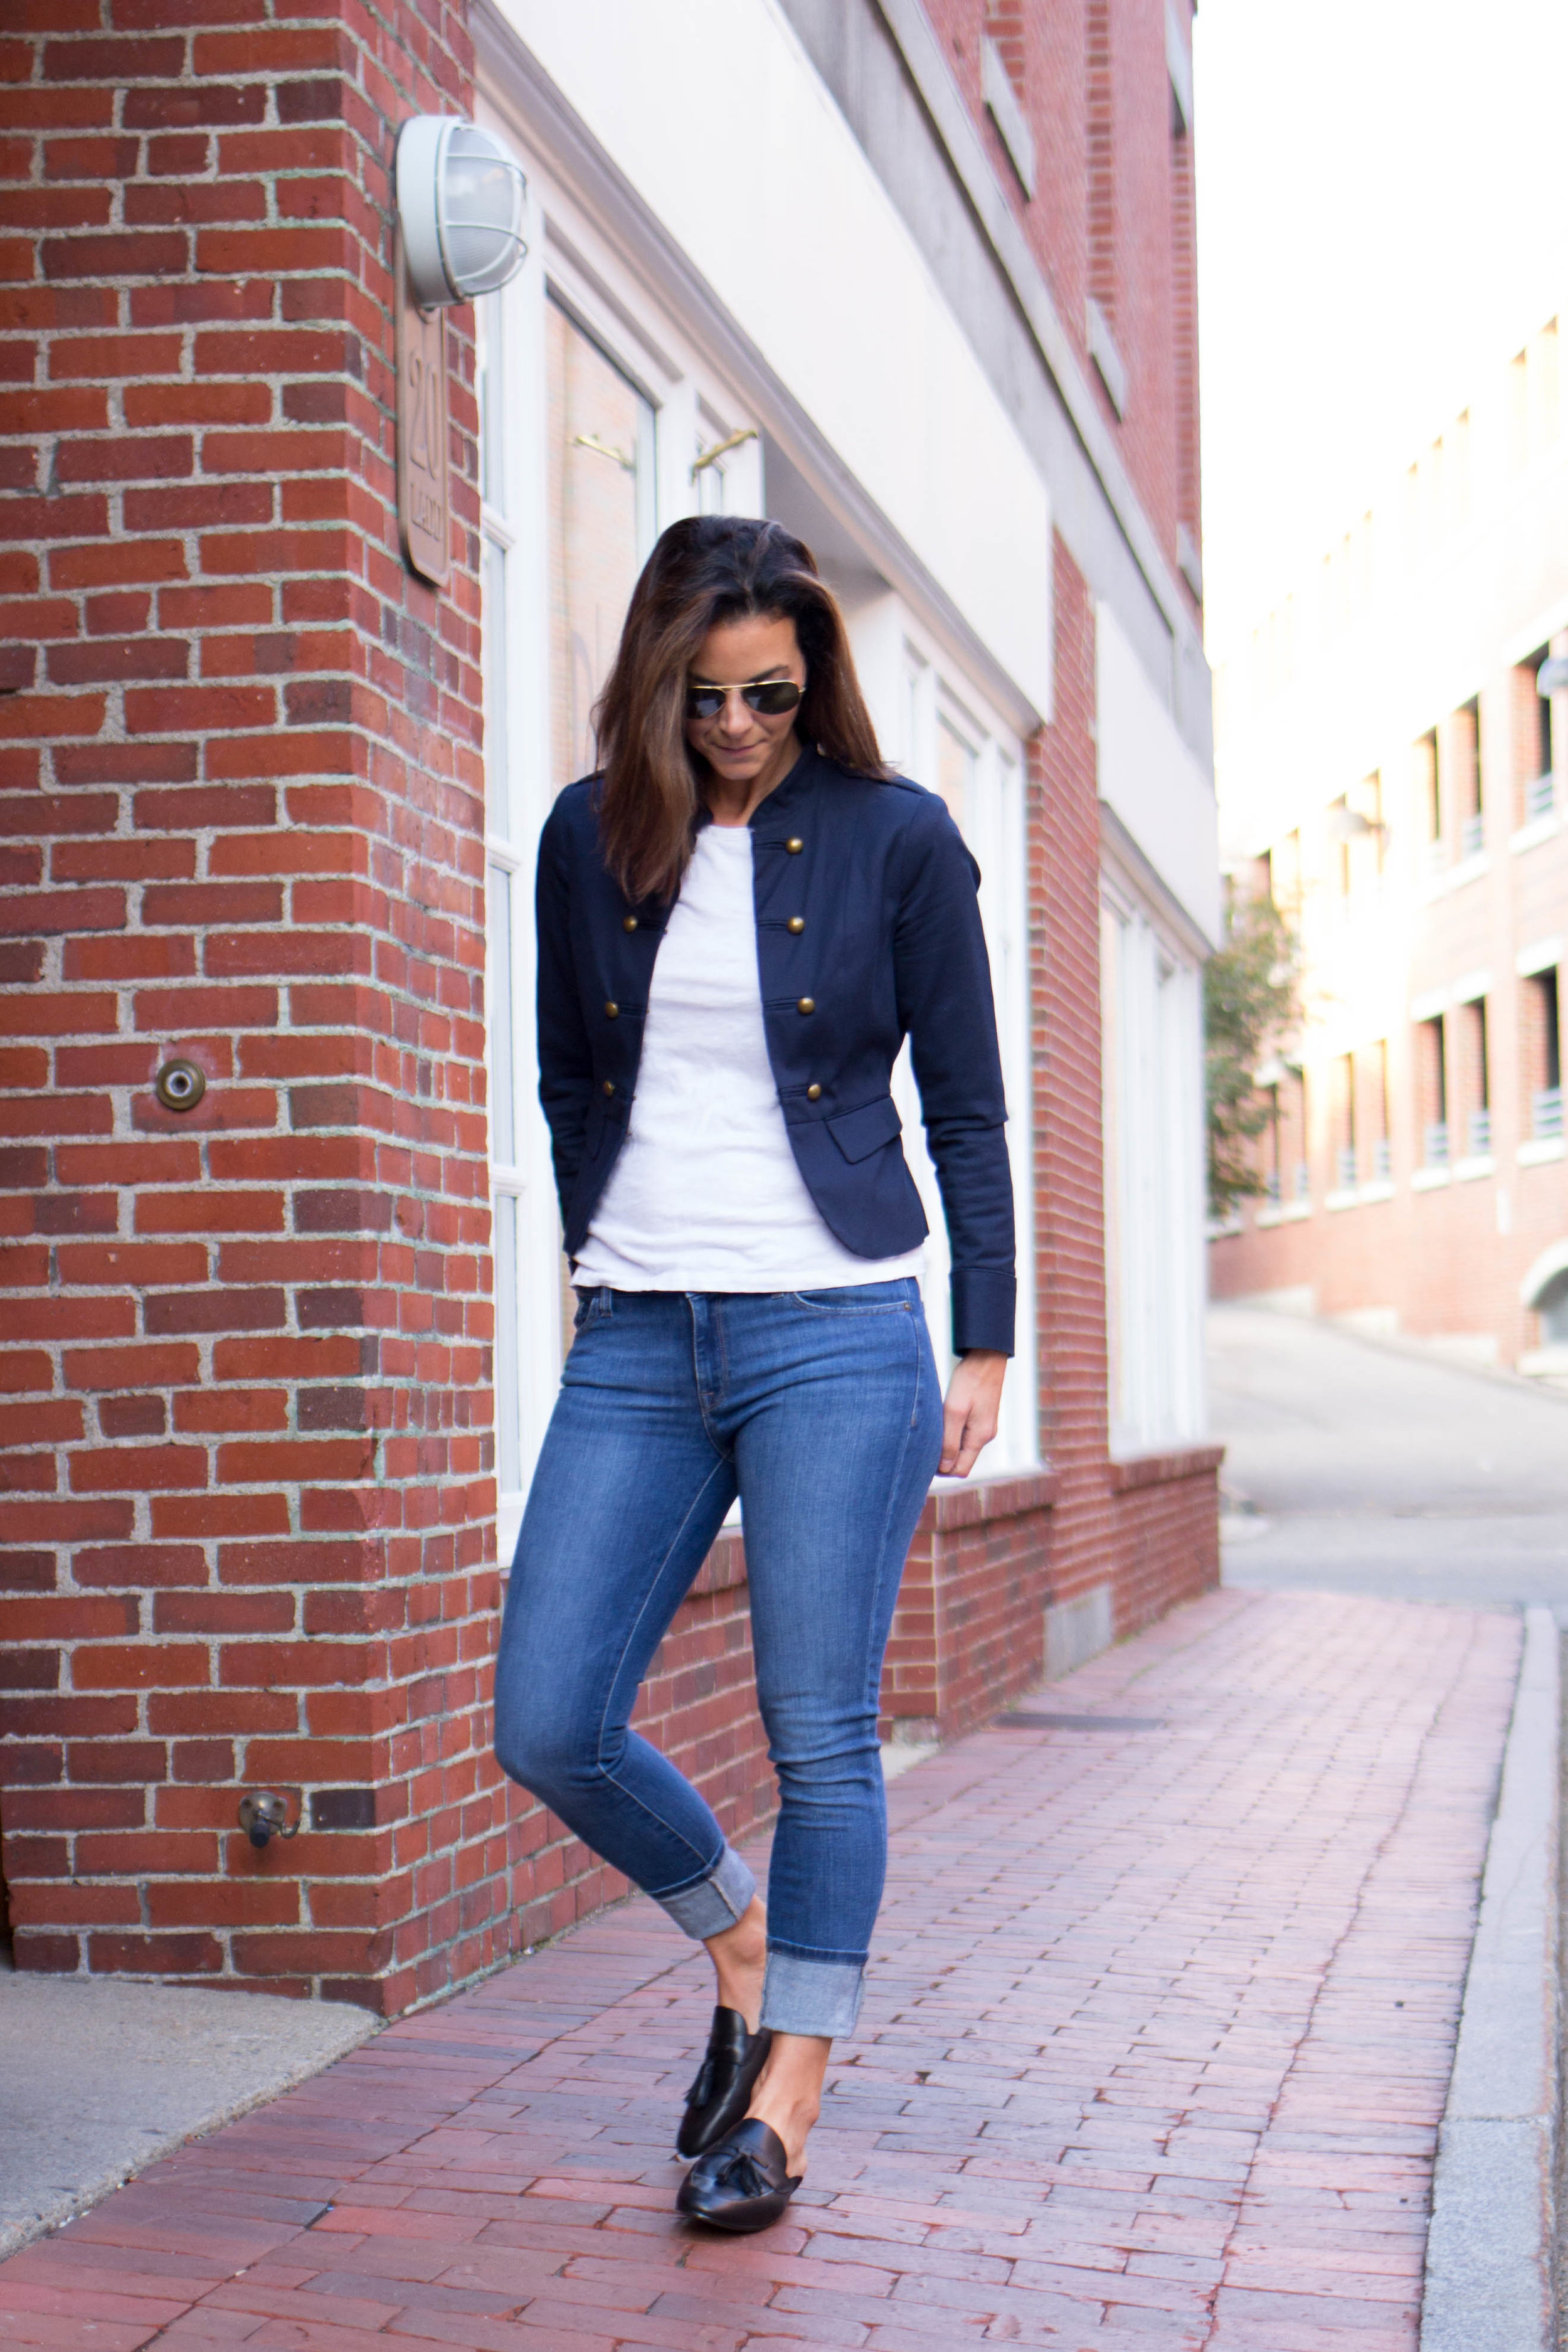 Fall  Outfits – Military Jacket Outfit – Spring Outfit – Casual Outfits – Casual Friday Outfit – Weekend Outfits - Fashion for Women – Tassle Loafer Mules -  heartandseam.com  #heartandseam #militaryjacket